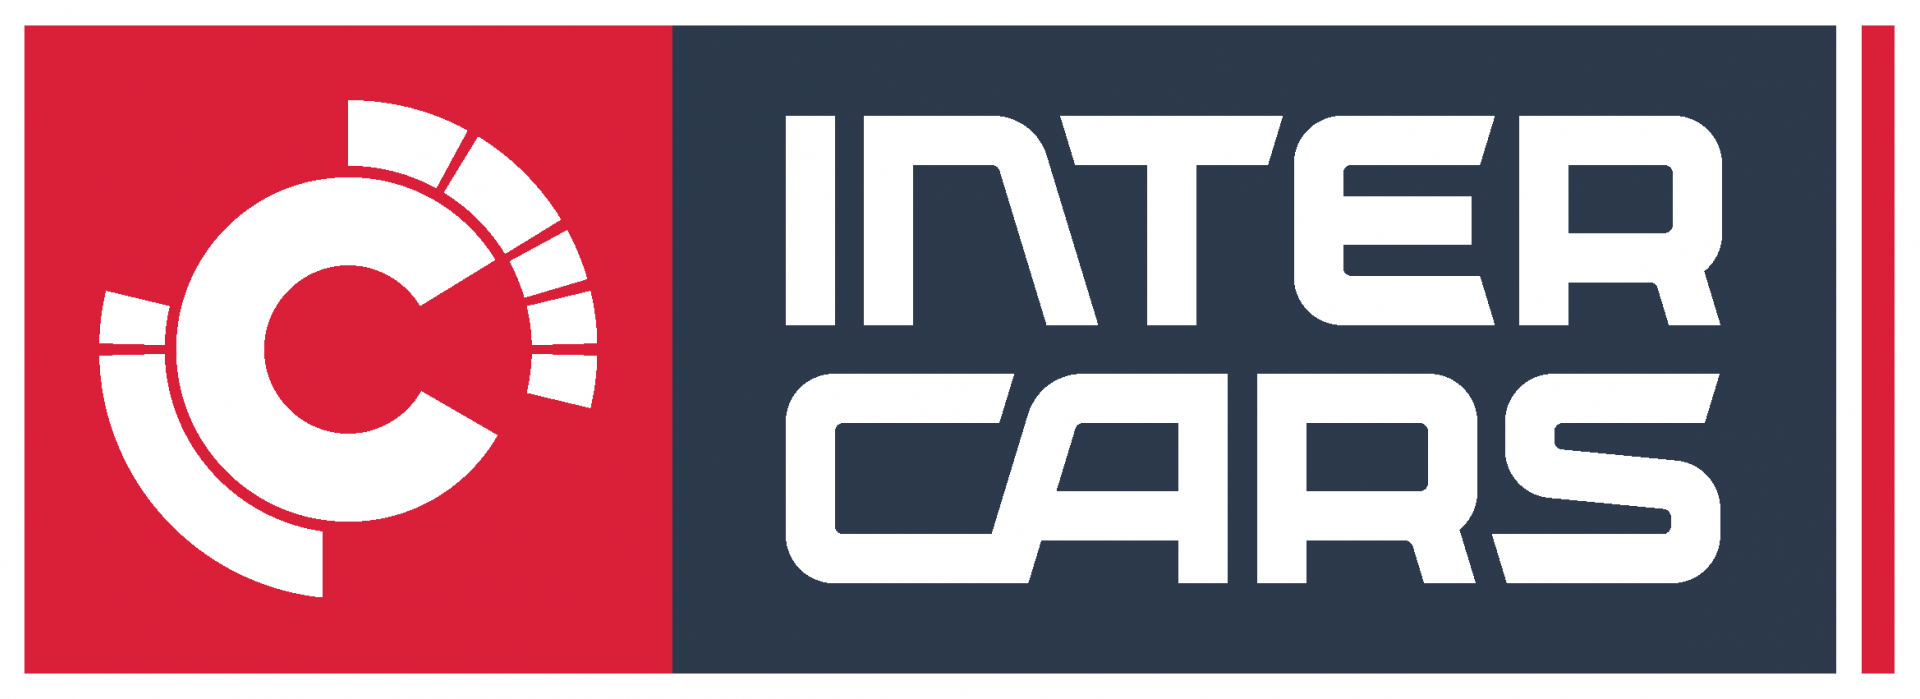 Inter Cars 2015 logo_hor_podstawowe_poziome_CMYK.png